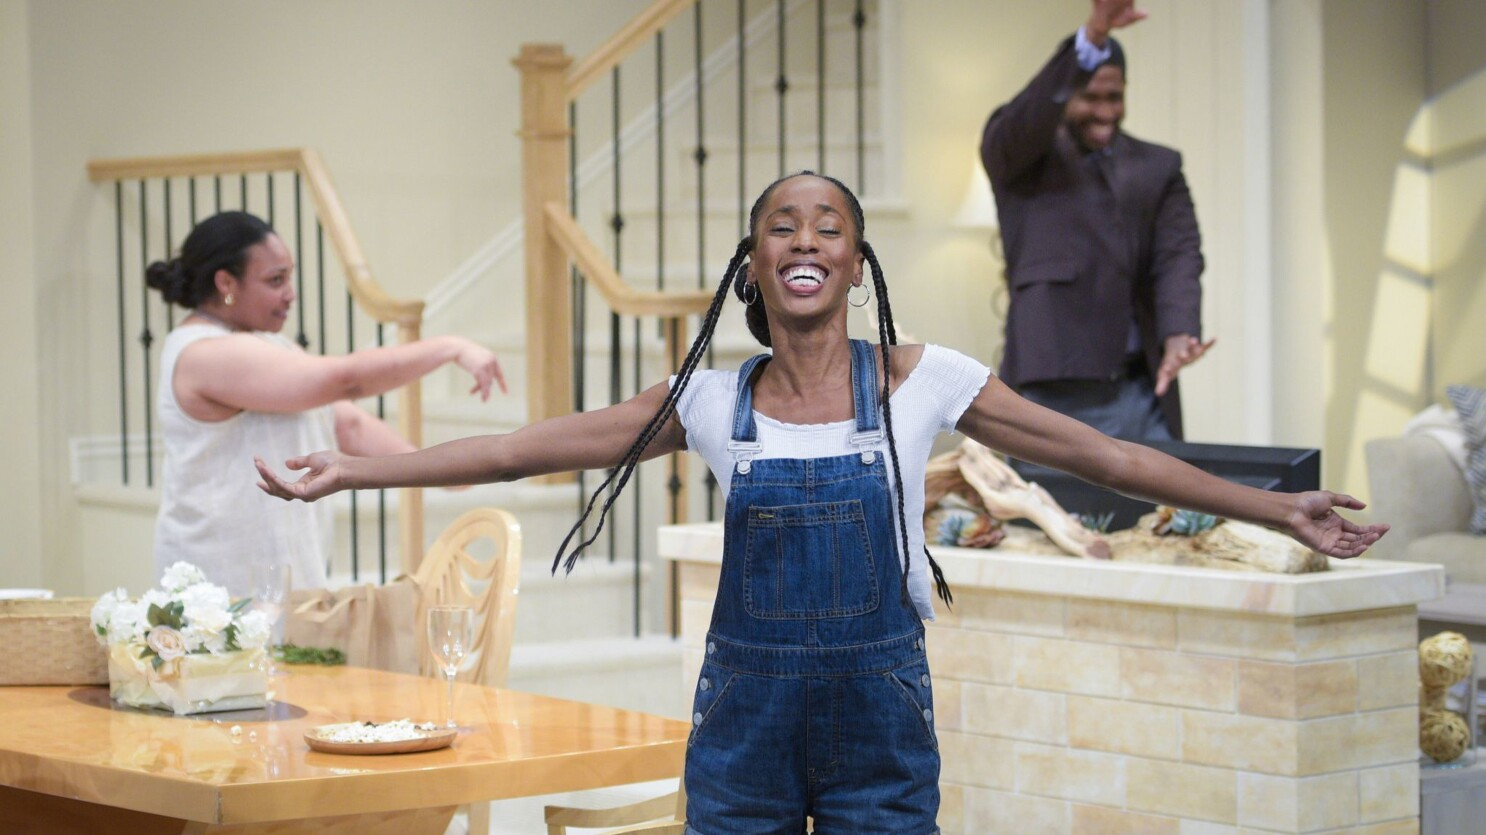 Playwrights are calling out racism in American theater - Los ...